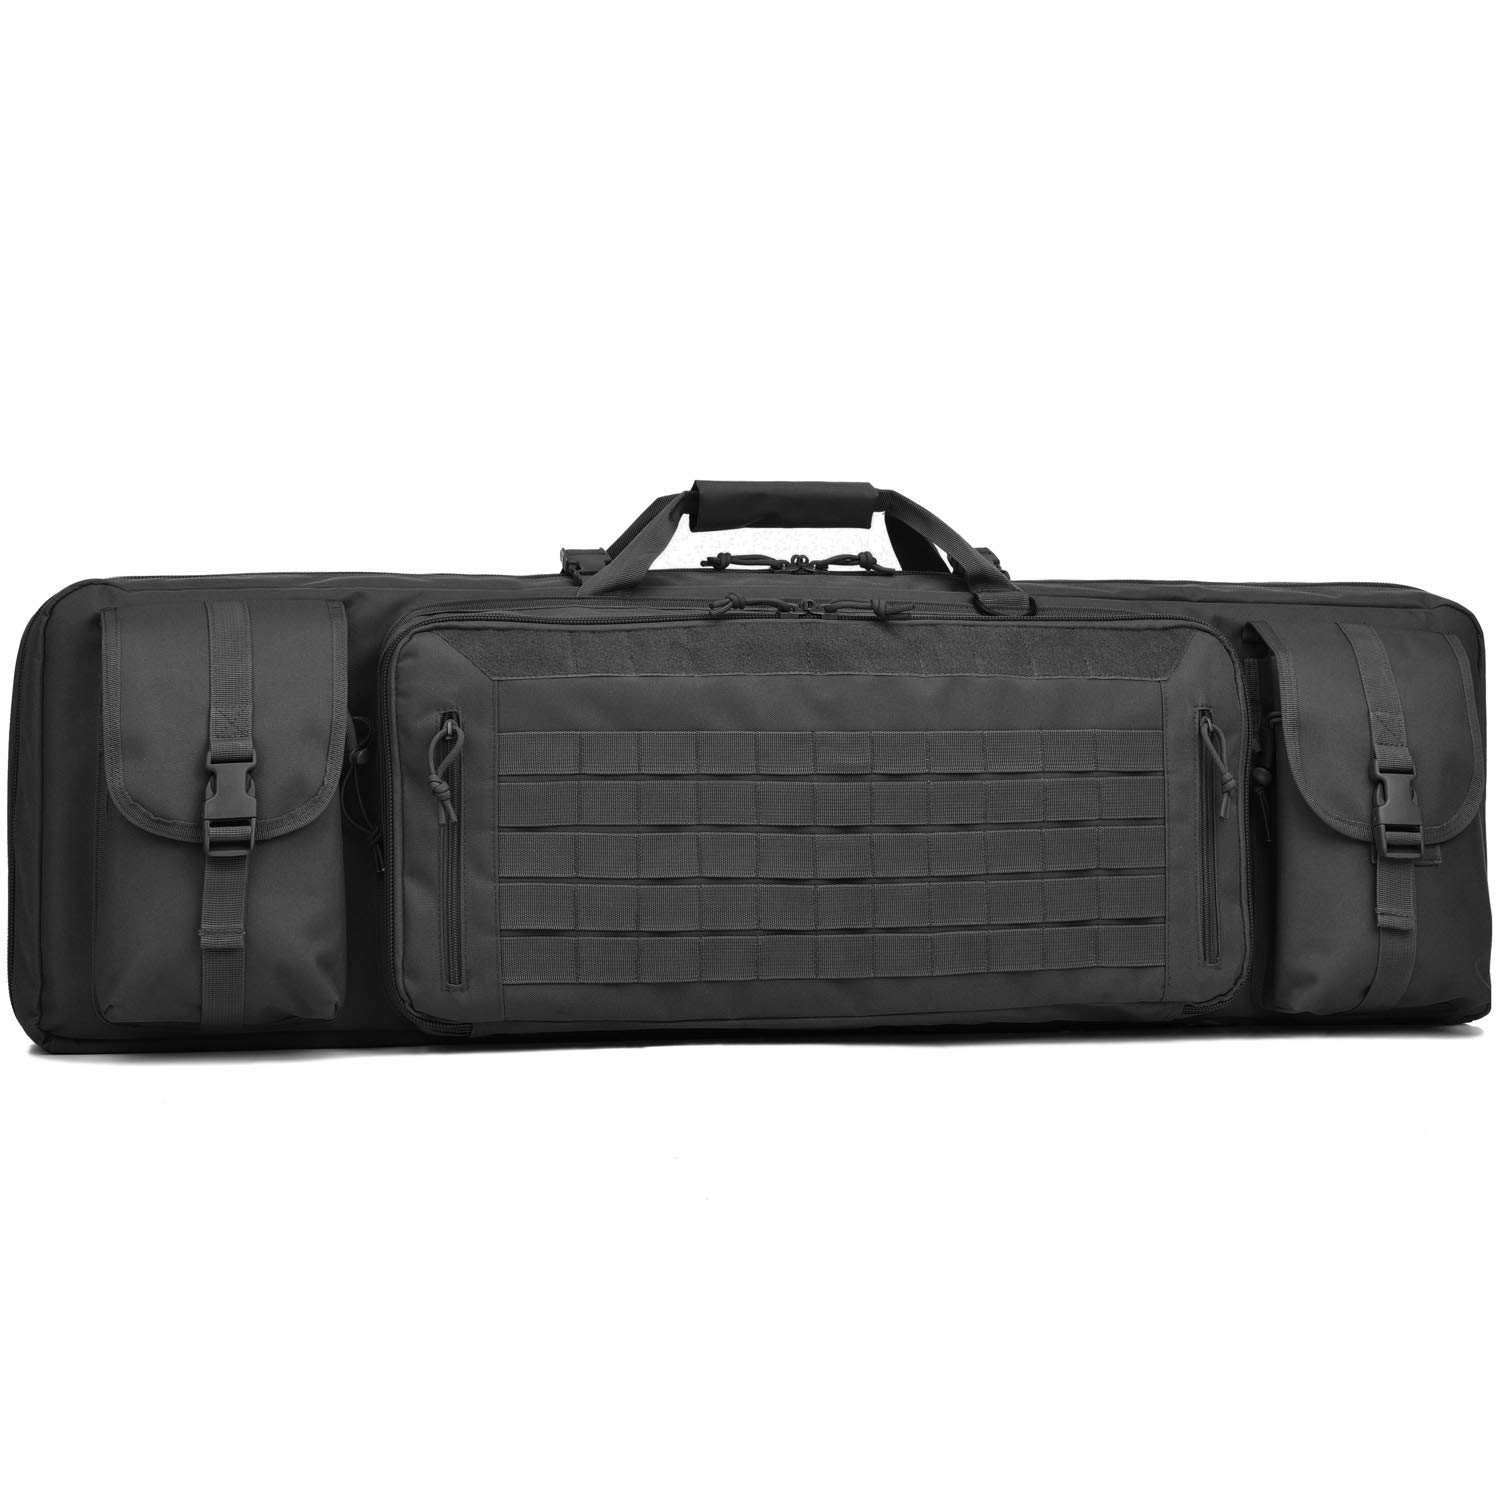 BOW-TAC Double Long Rifle Gun Case Bag Tactical Rifle Backpack Pistol Soft Firearm Transportation Carbine Case - Lockable Compartment, Available Length in 36'' 42'' 46''